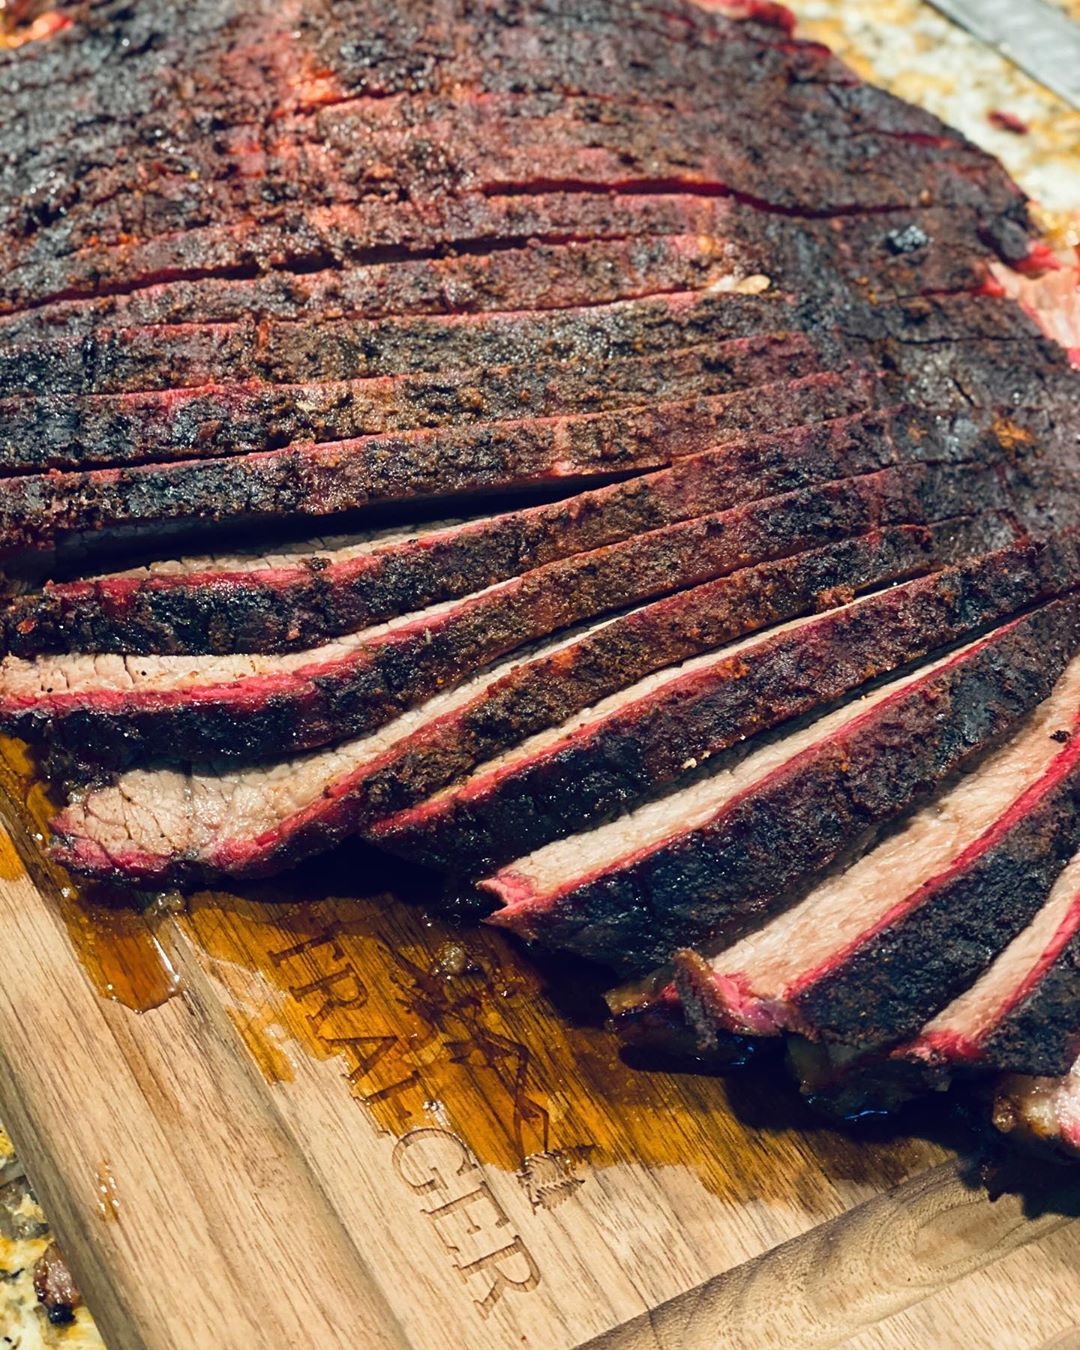 This brisket didn't disappoint like my chargers did on Sunday night. . . . .